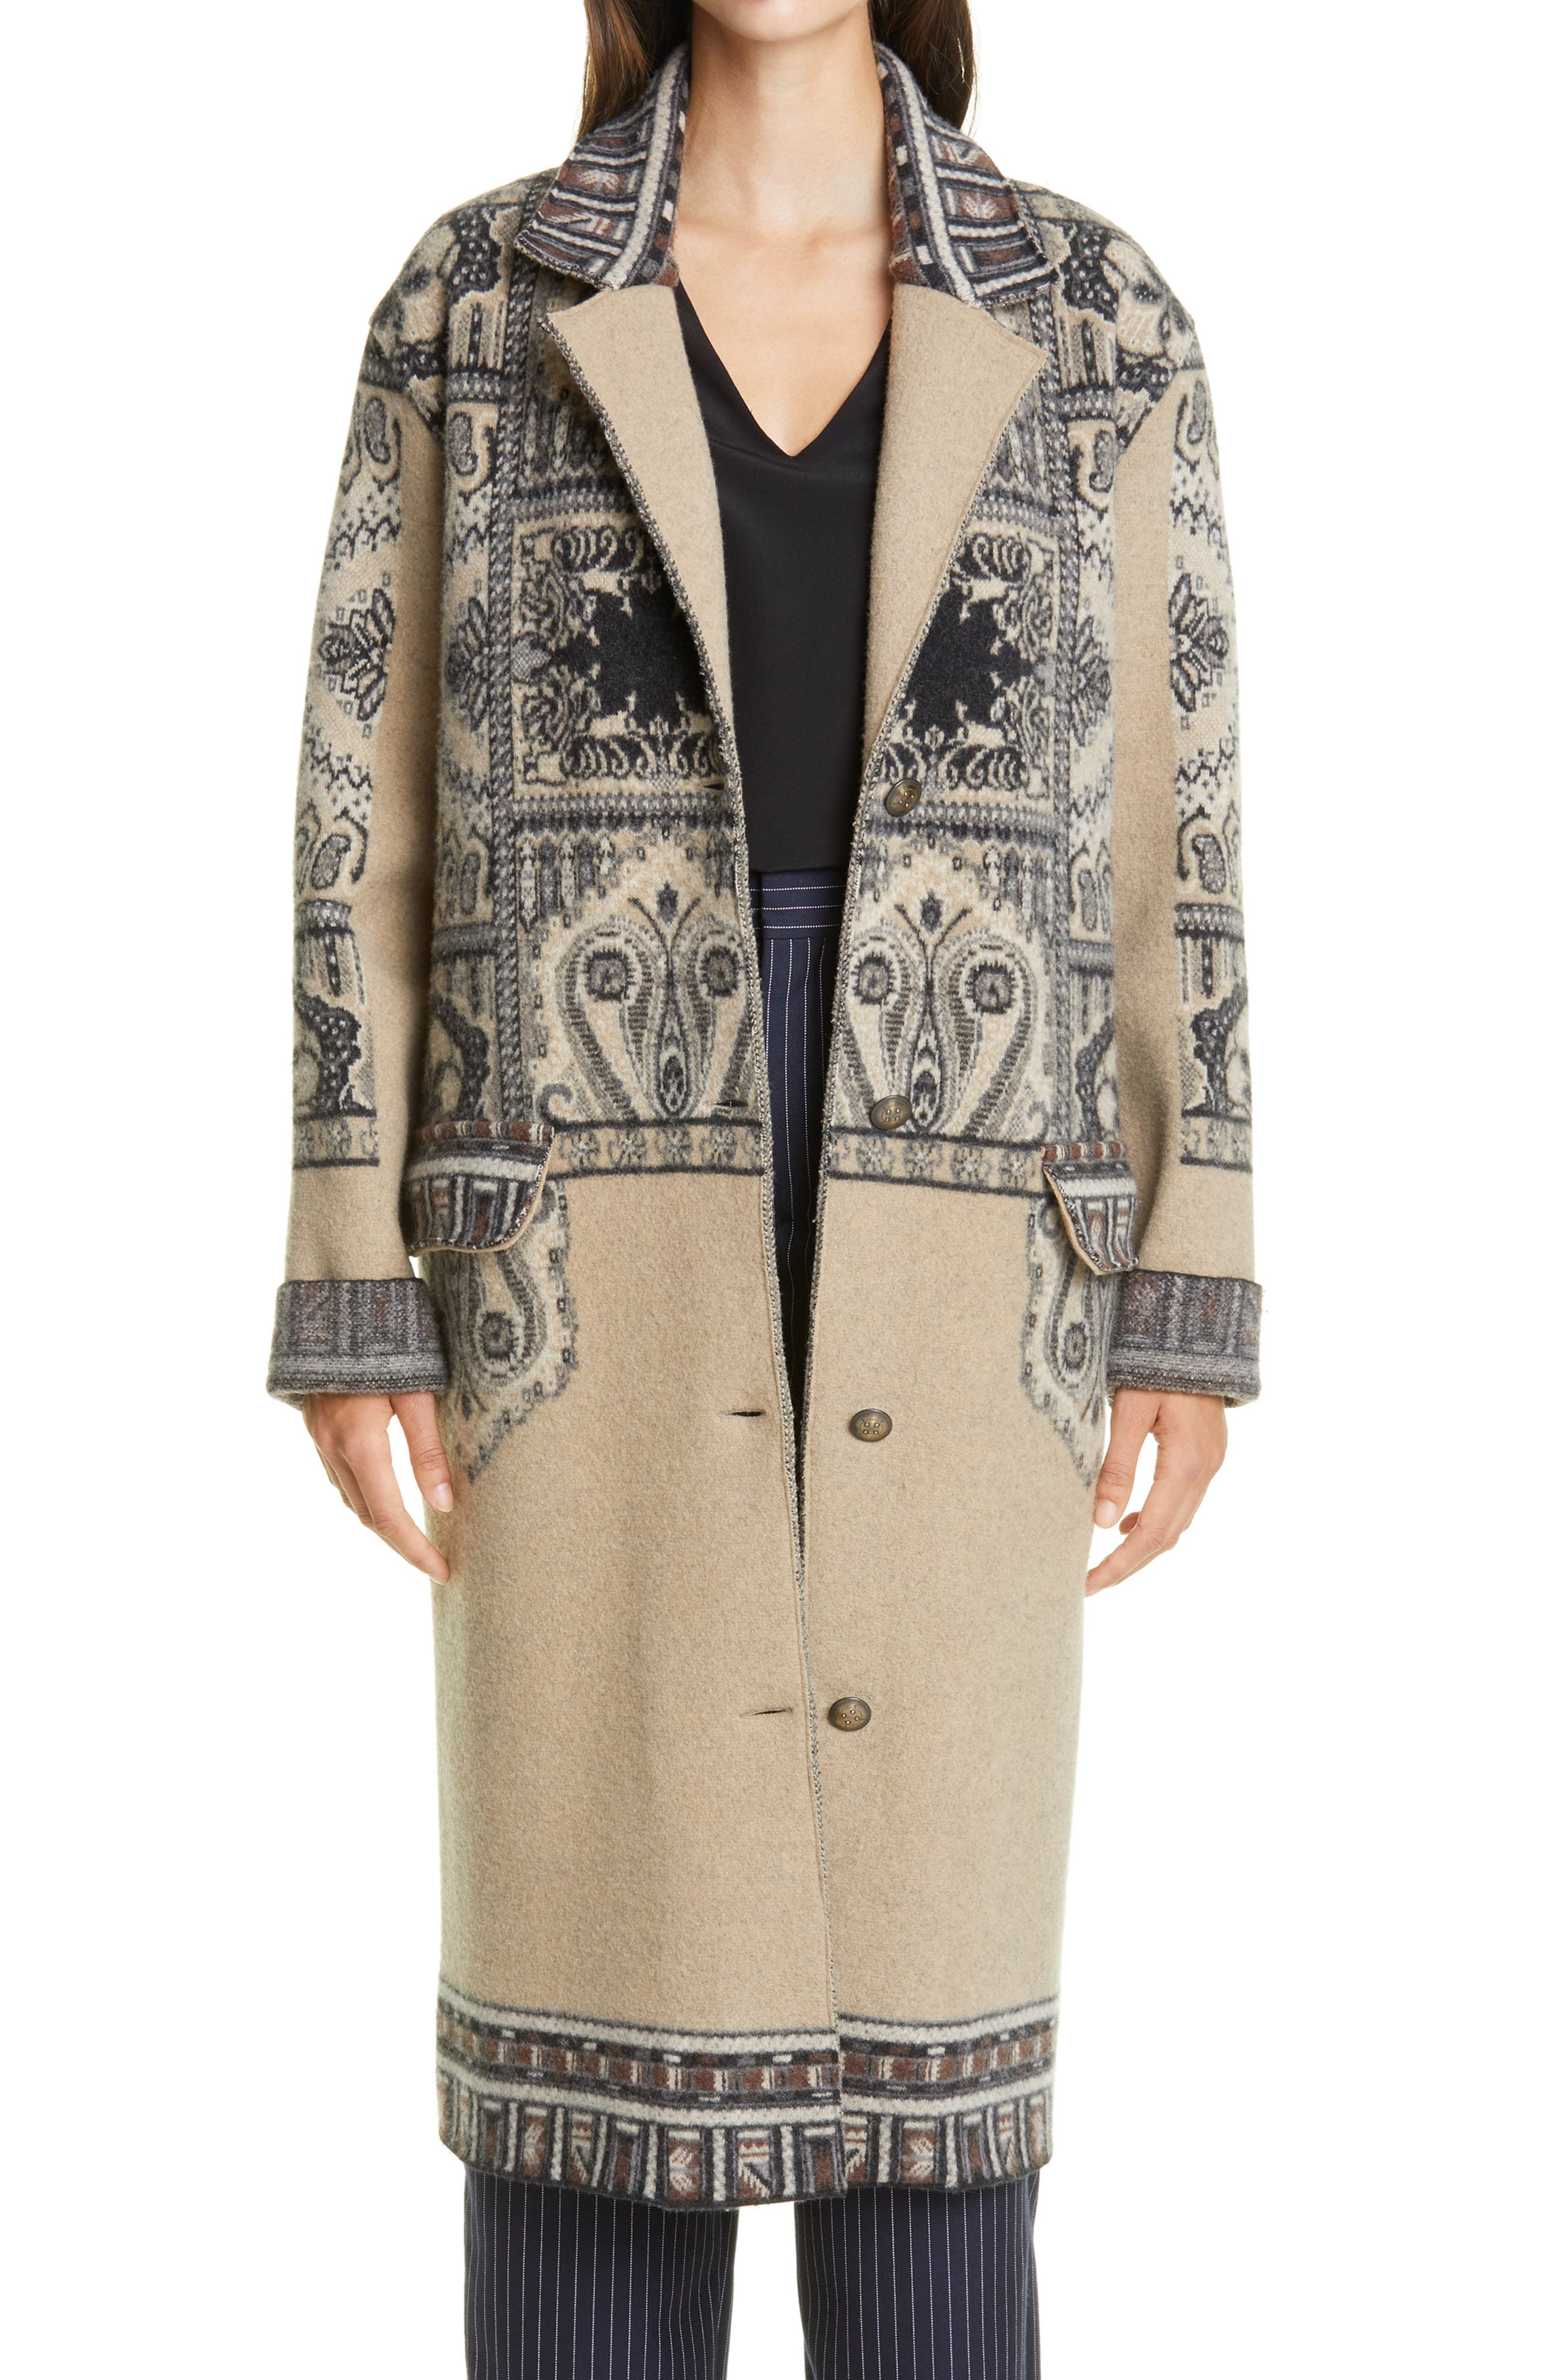 1920s Coats, Furs, Jackets and Capes History Womens Etro Print Wool Three-Quarter Coat Size 6 US - Beige $2,720.00 AT vintagedancer.com